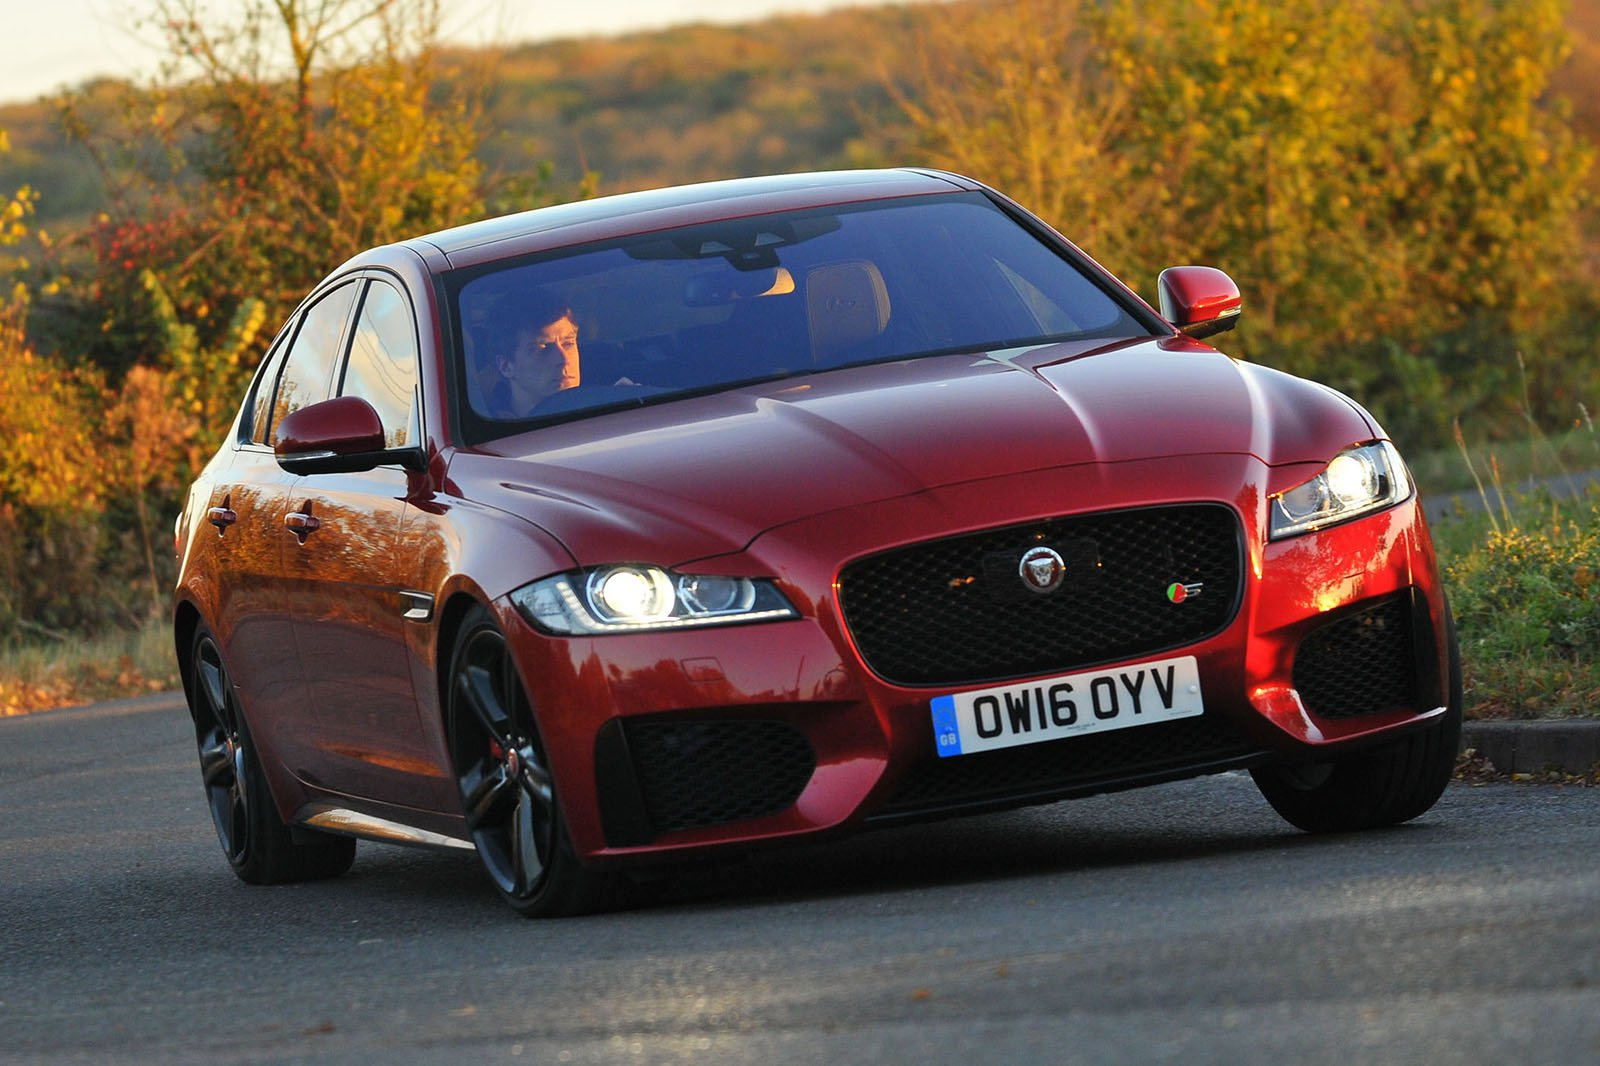 JAGUAR XF SALOON SPECIAL EDITIONS